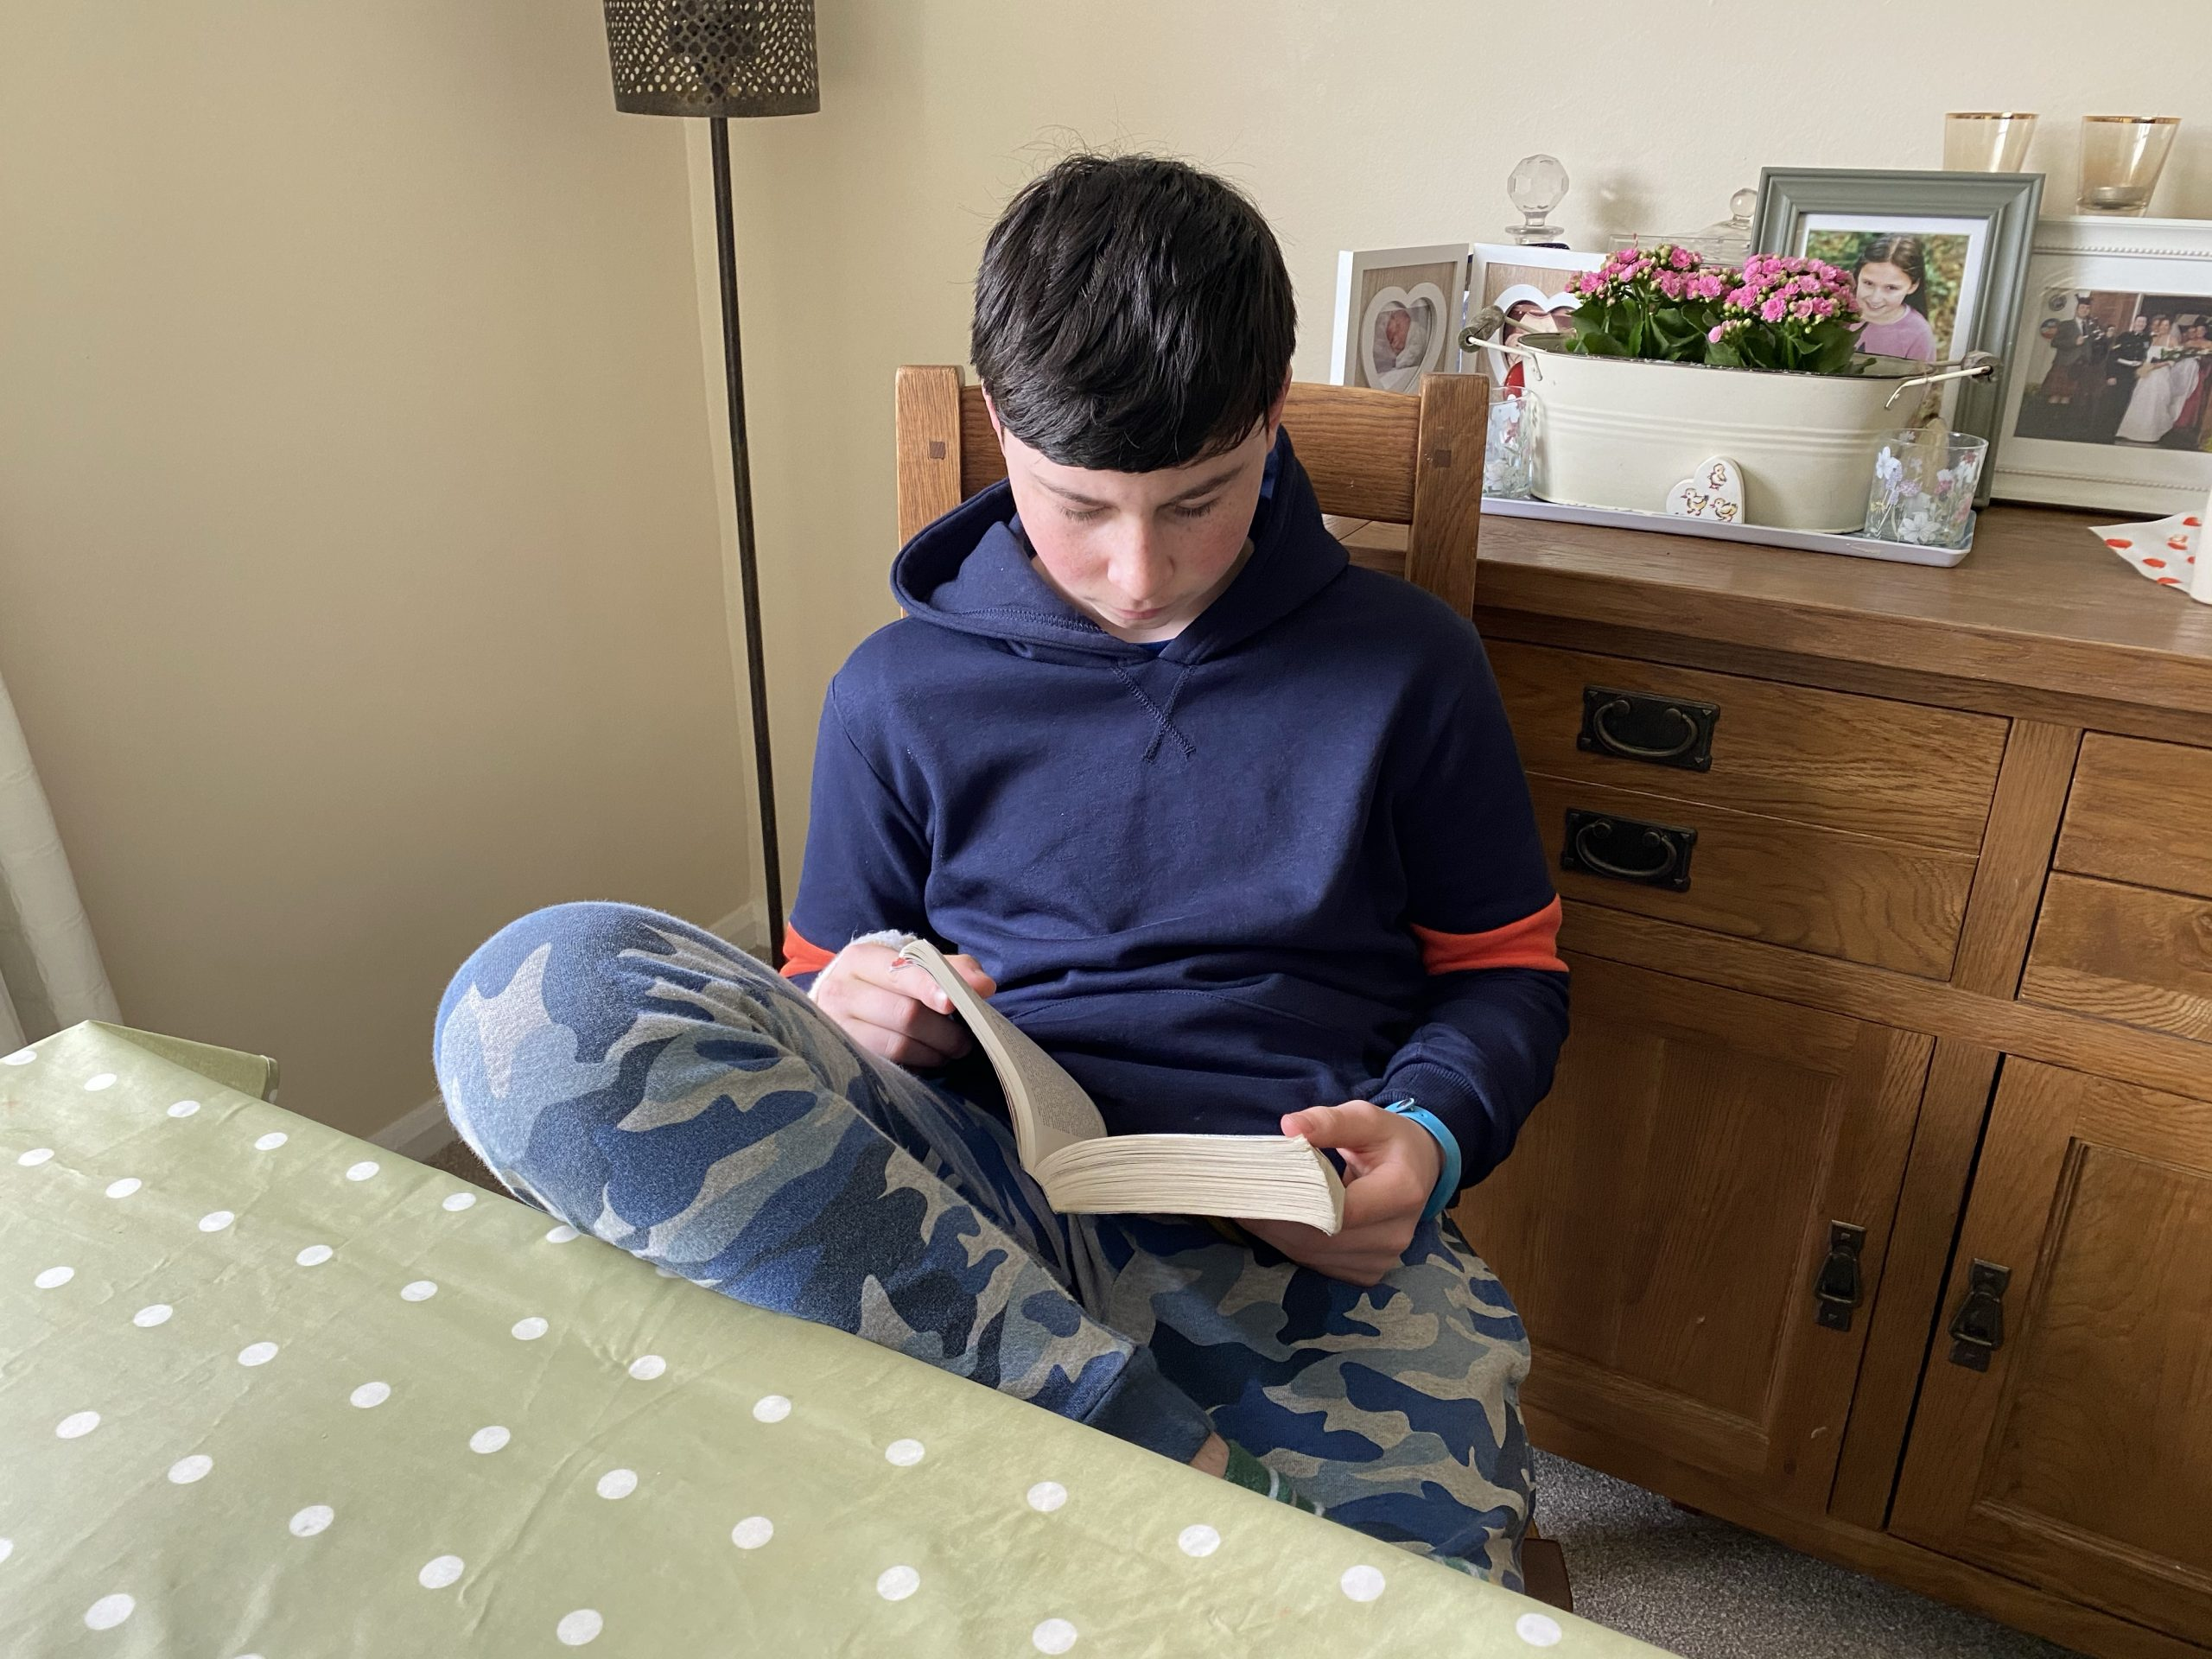 a young boy reading a book during downtime of home school